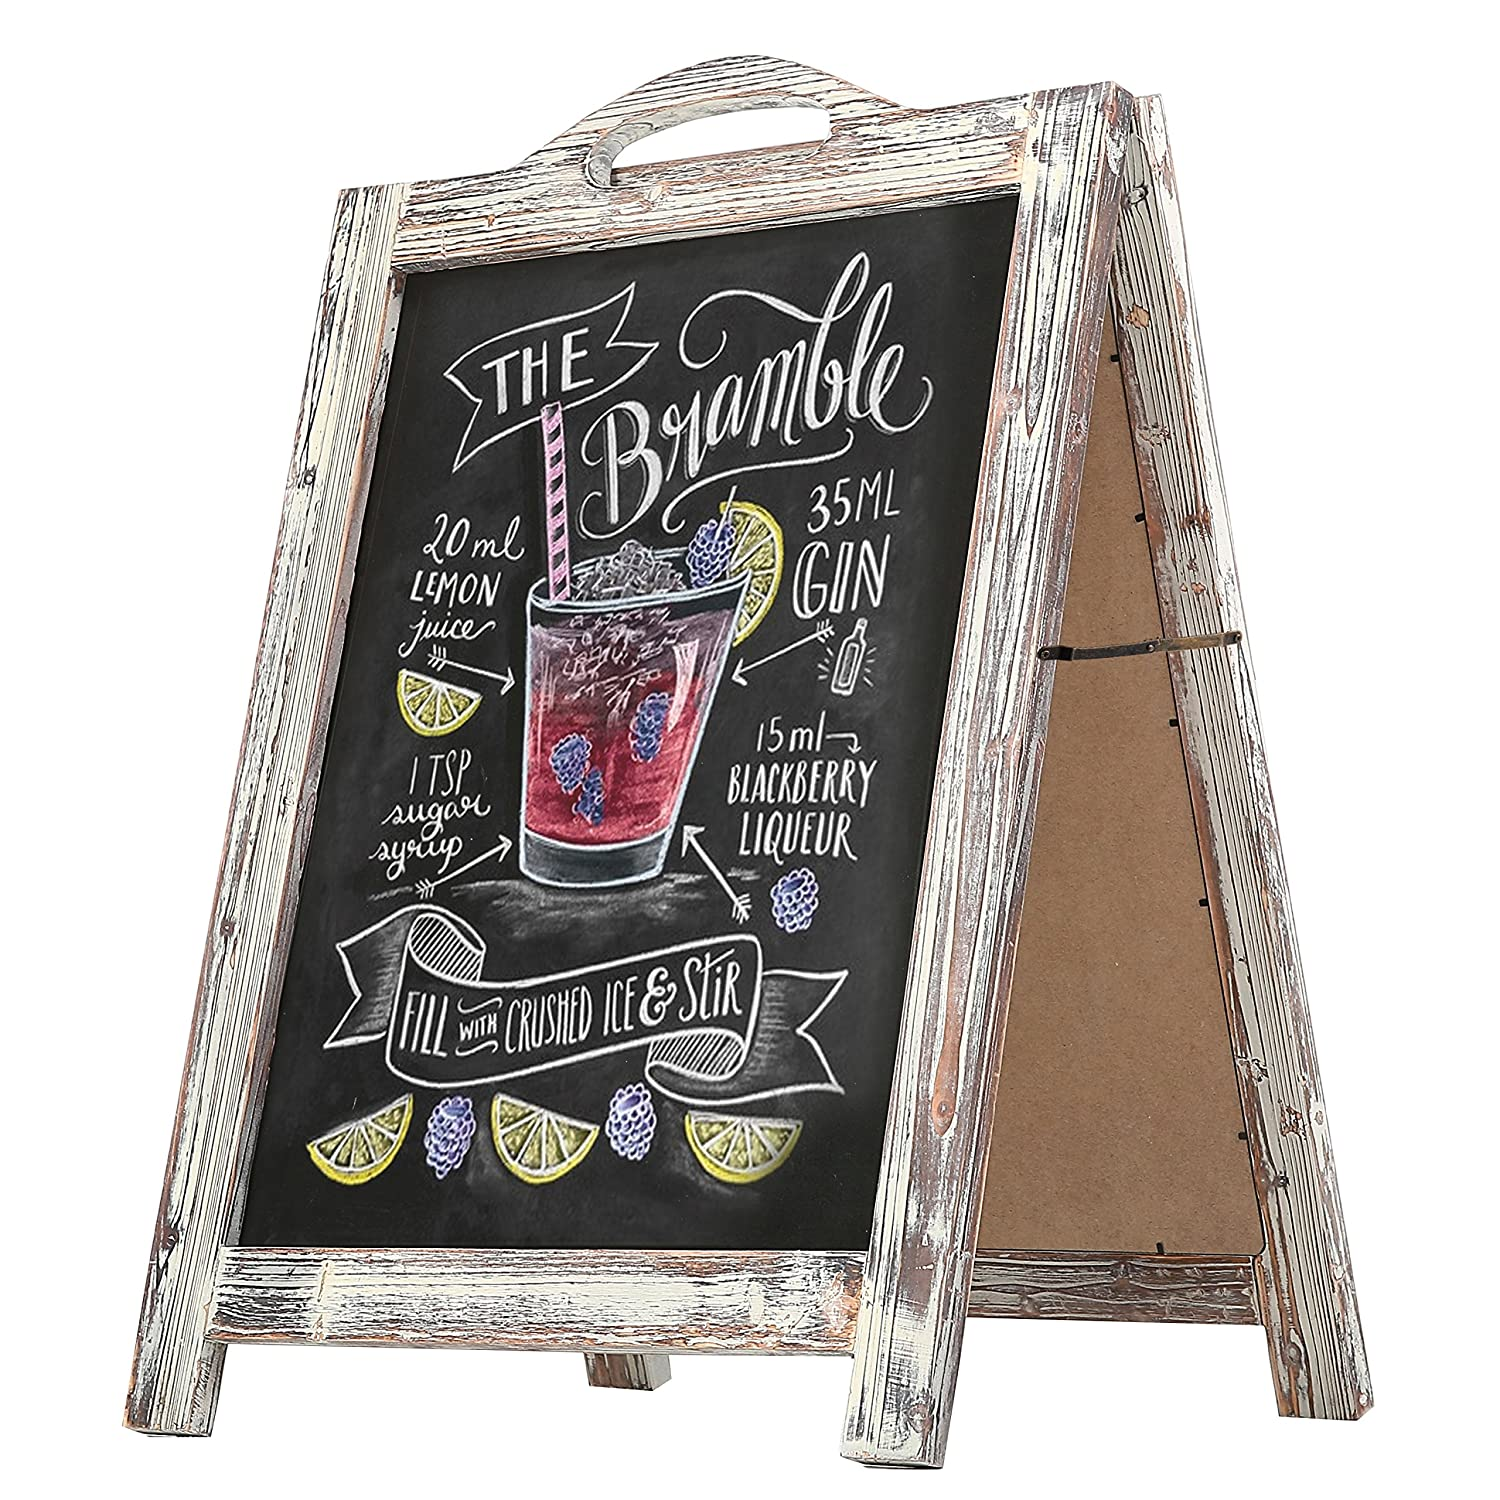 2-Sided Torched Wood A-Frame Chalkboard Sign, Sidewalk Cafe Menu Sandwich Board